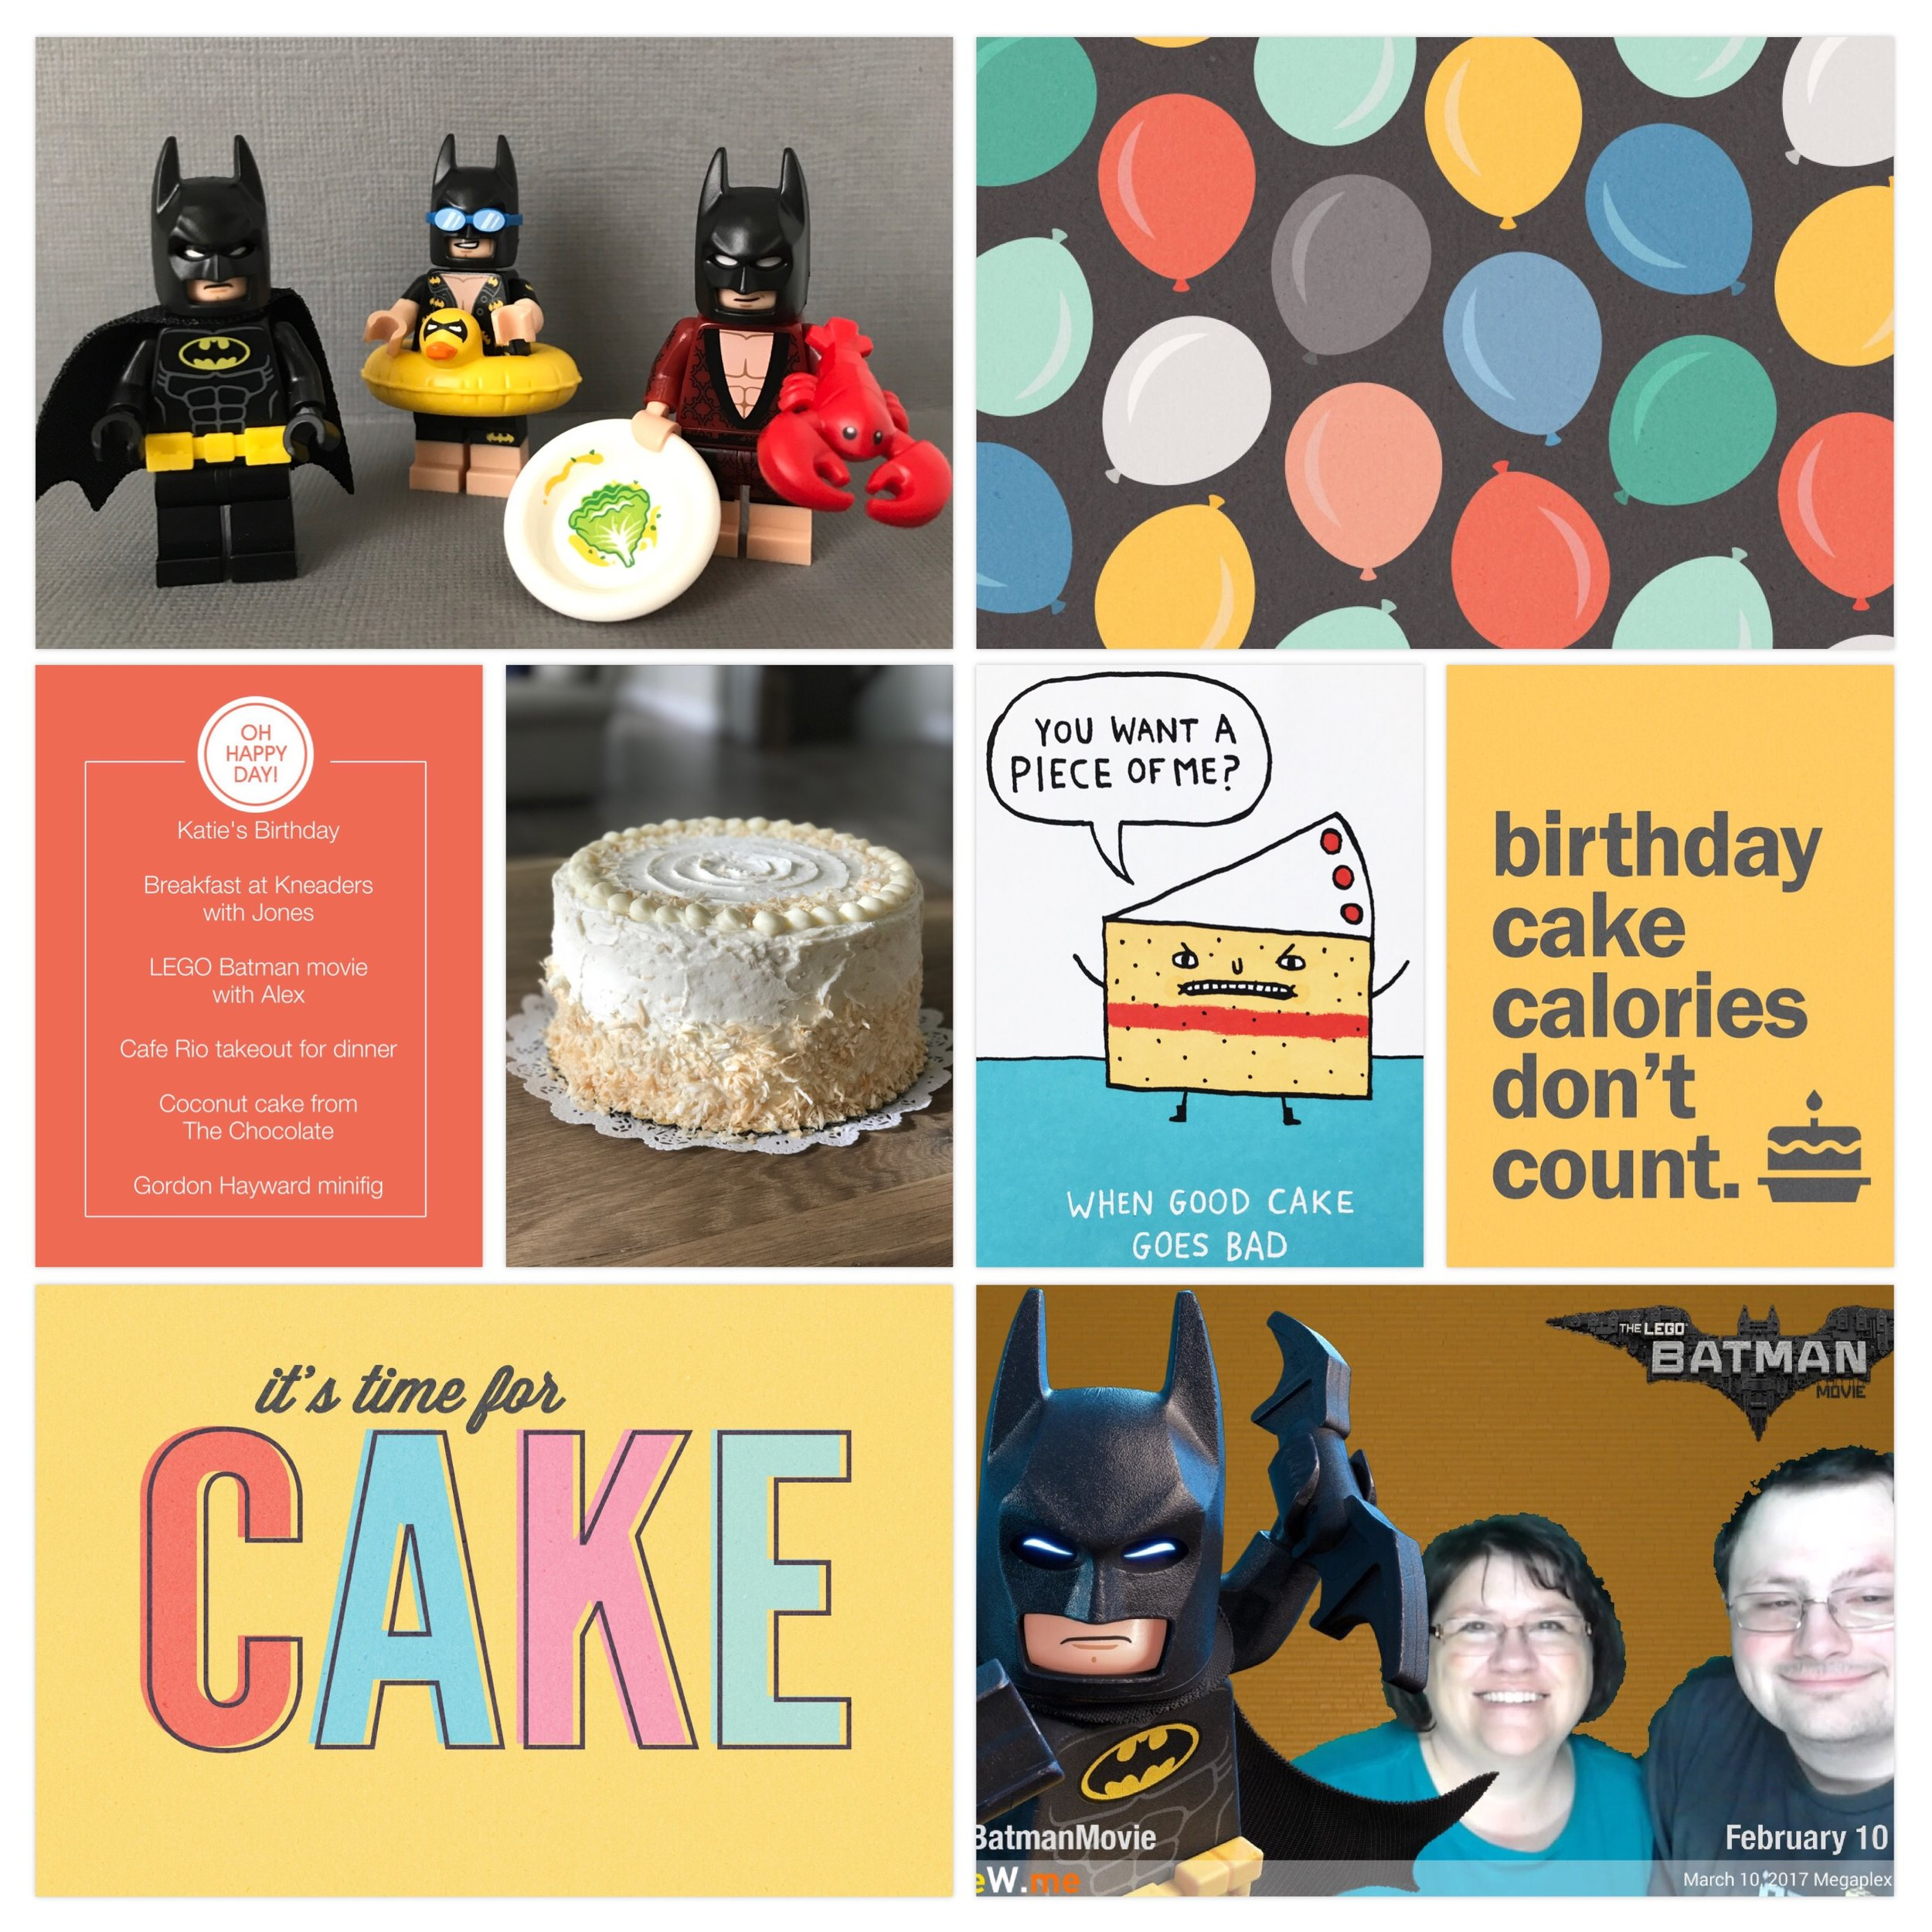 My birthday in March of 2017.Page created in Project Life App. Cards from Peppermint Creative. I also took a picture of the funny birthday card my brother sent me and used it on the page.